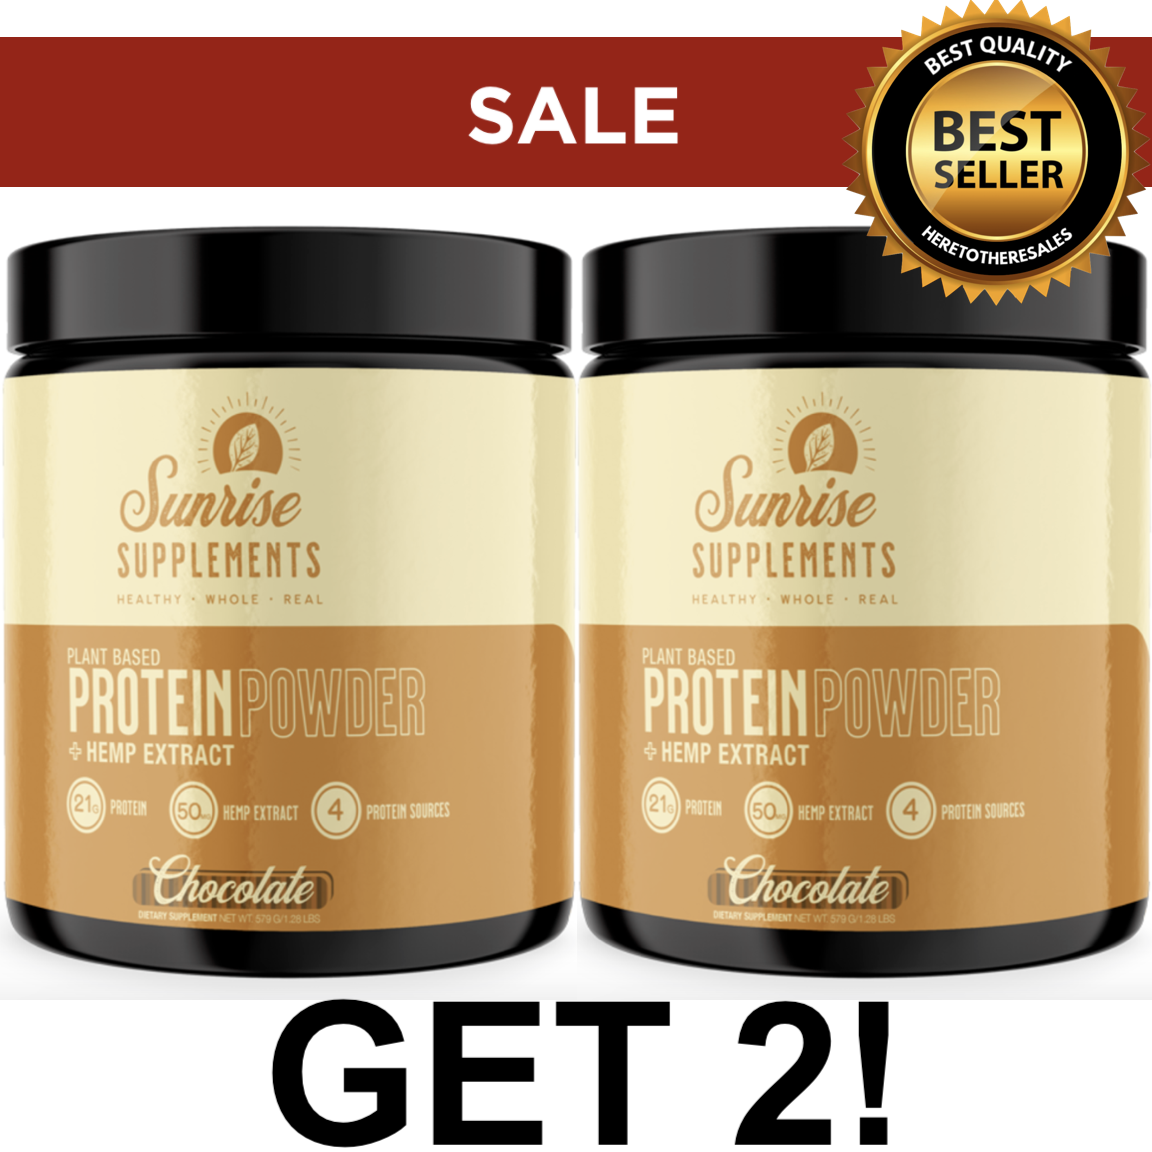 SALE! 2X Protein Powder Meal Replacement Weight loss VEGAN Chocolate Flavor 1LB